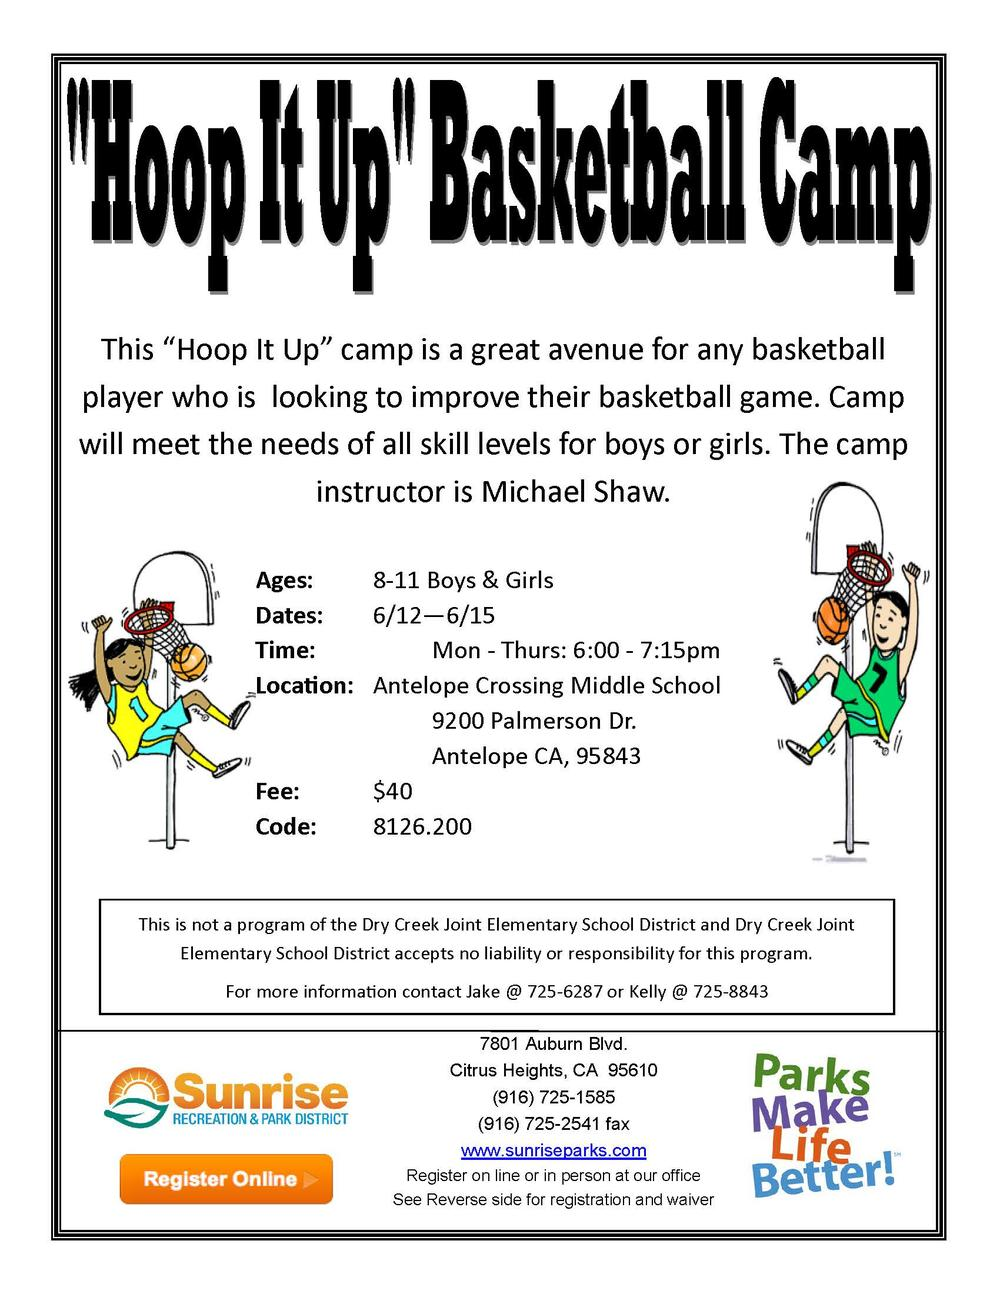 Sunrise Recreation and Park Hoop It Up Basketball Camp Flyer